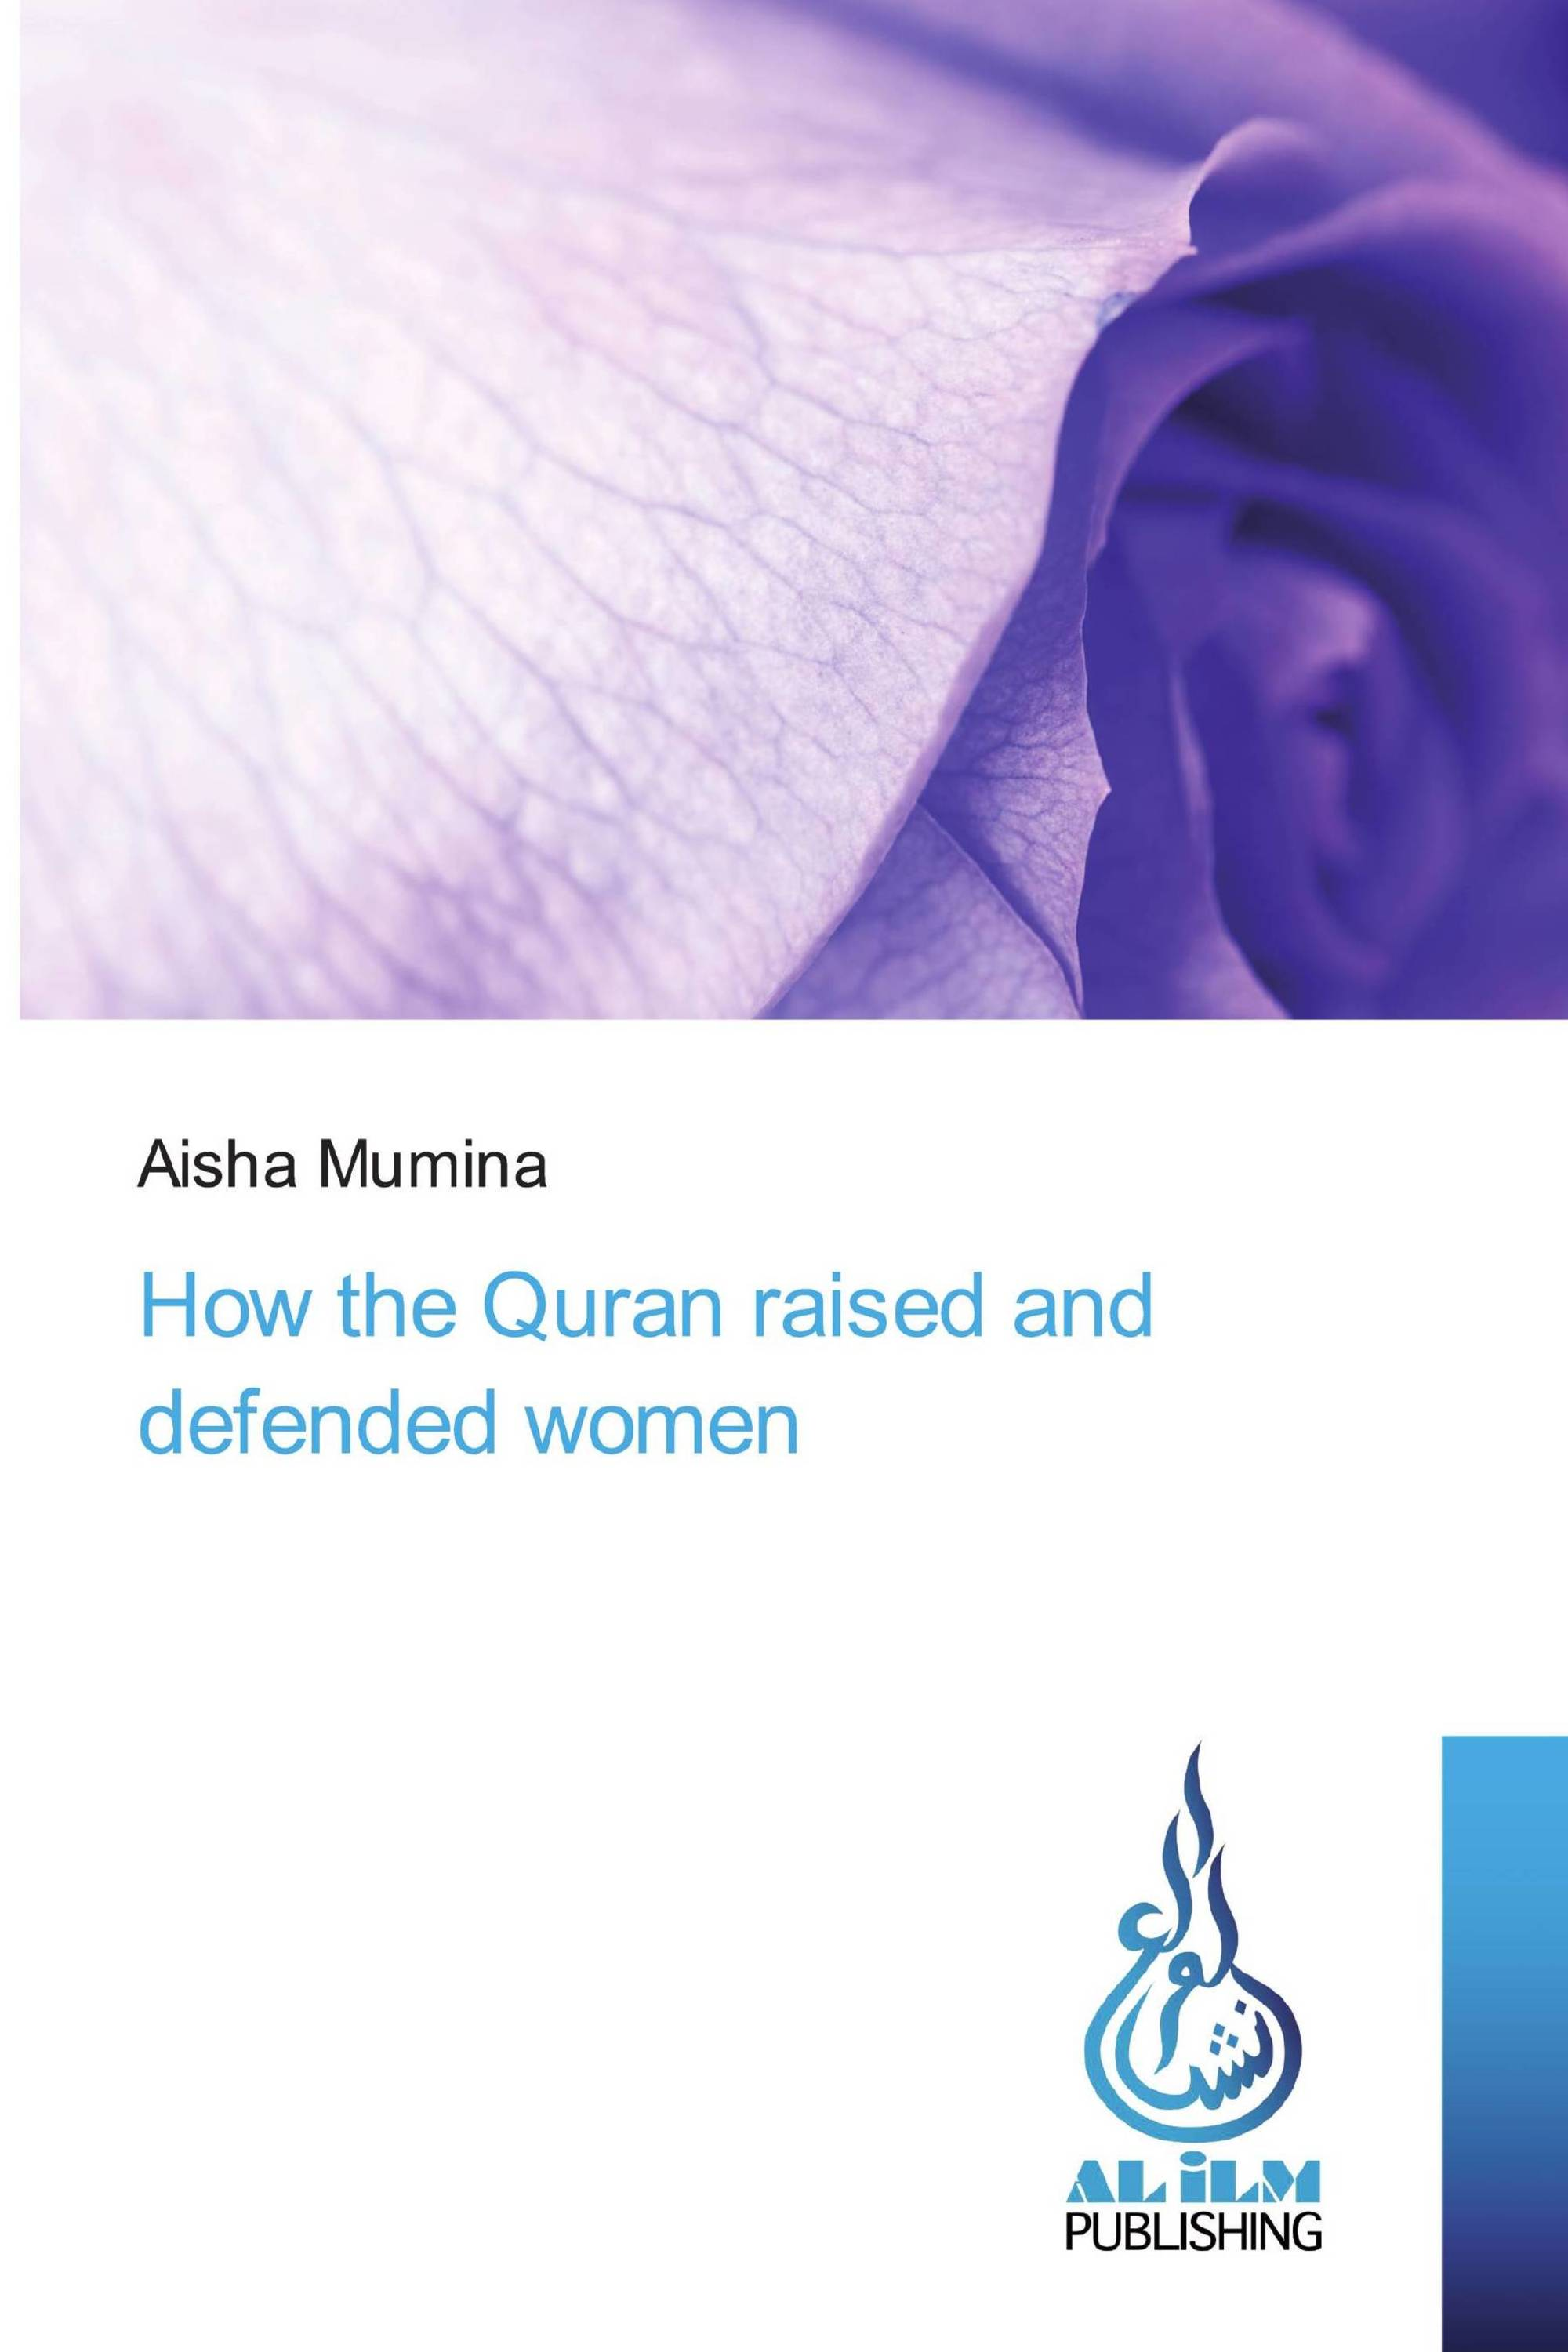 How the Quran raised and defended women